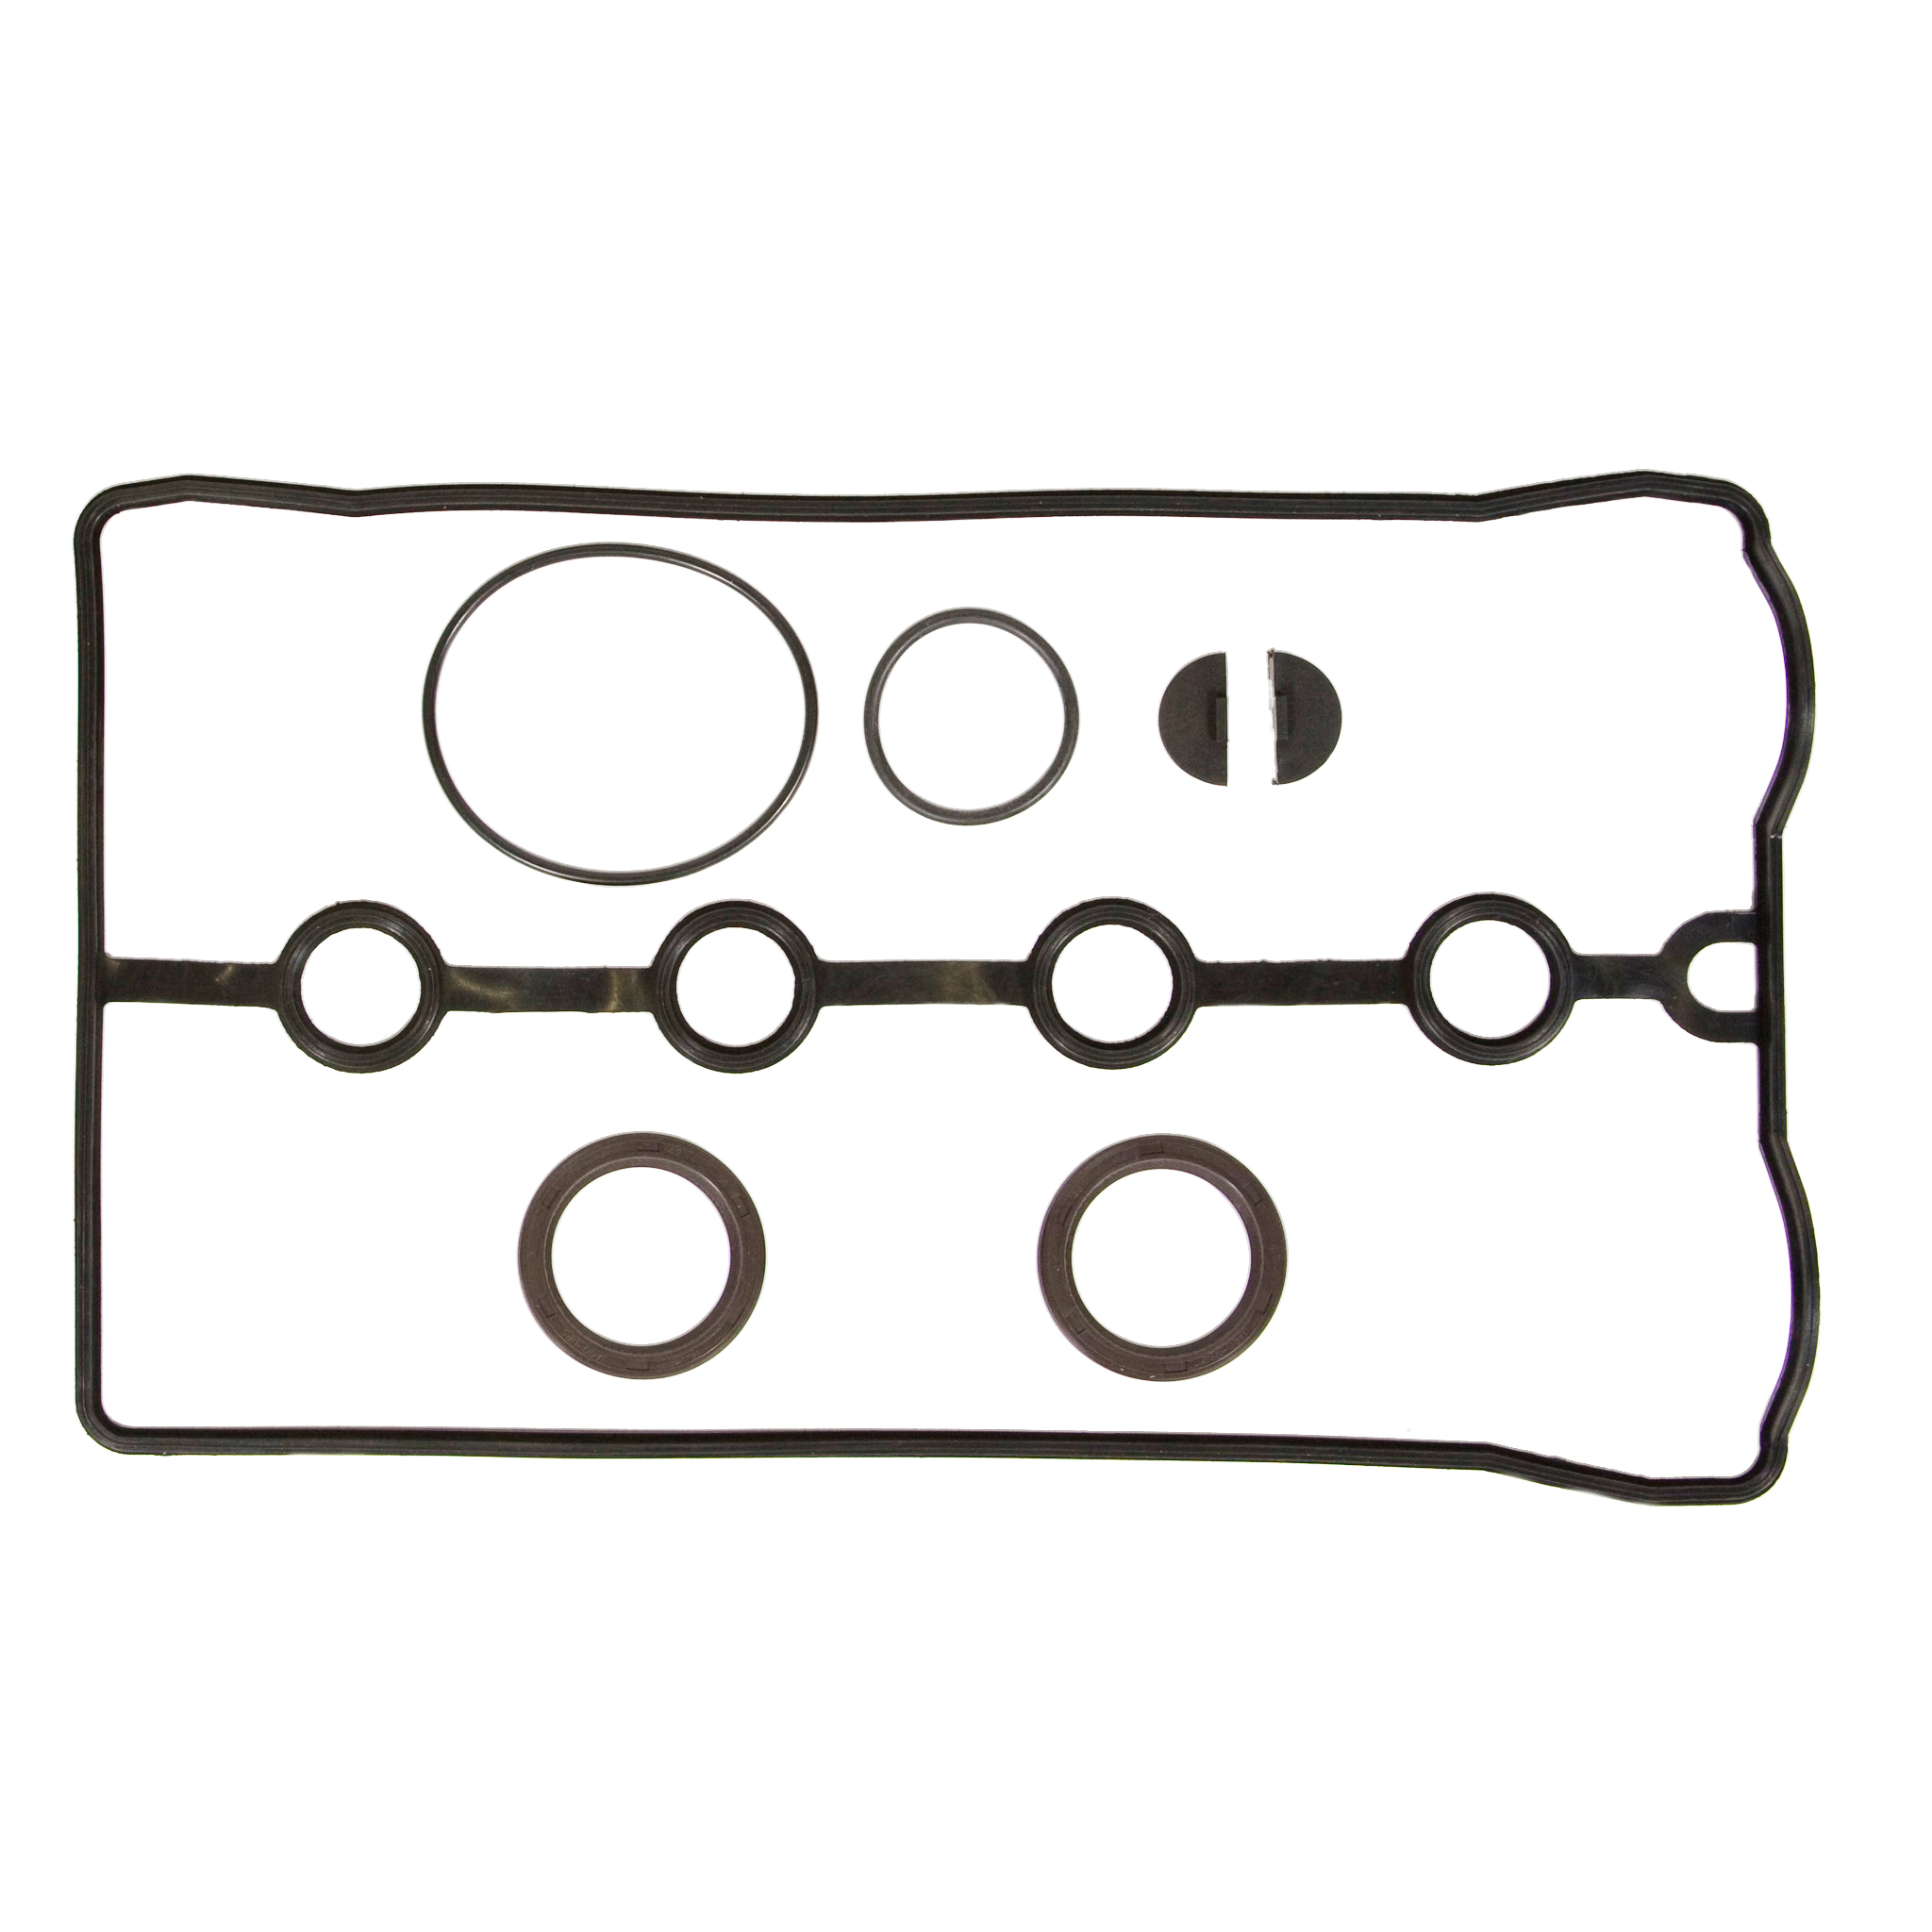 Head Gasket Set Fit 99 01 Daewoo Lanos 1 6 Dohc A16